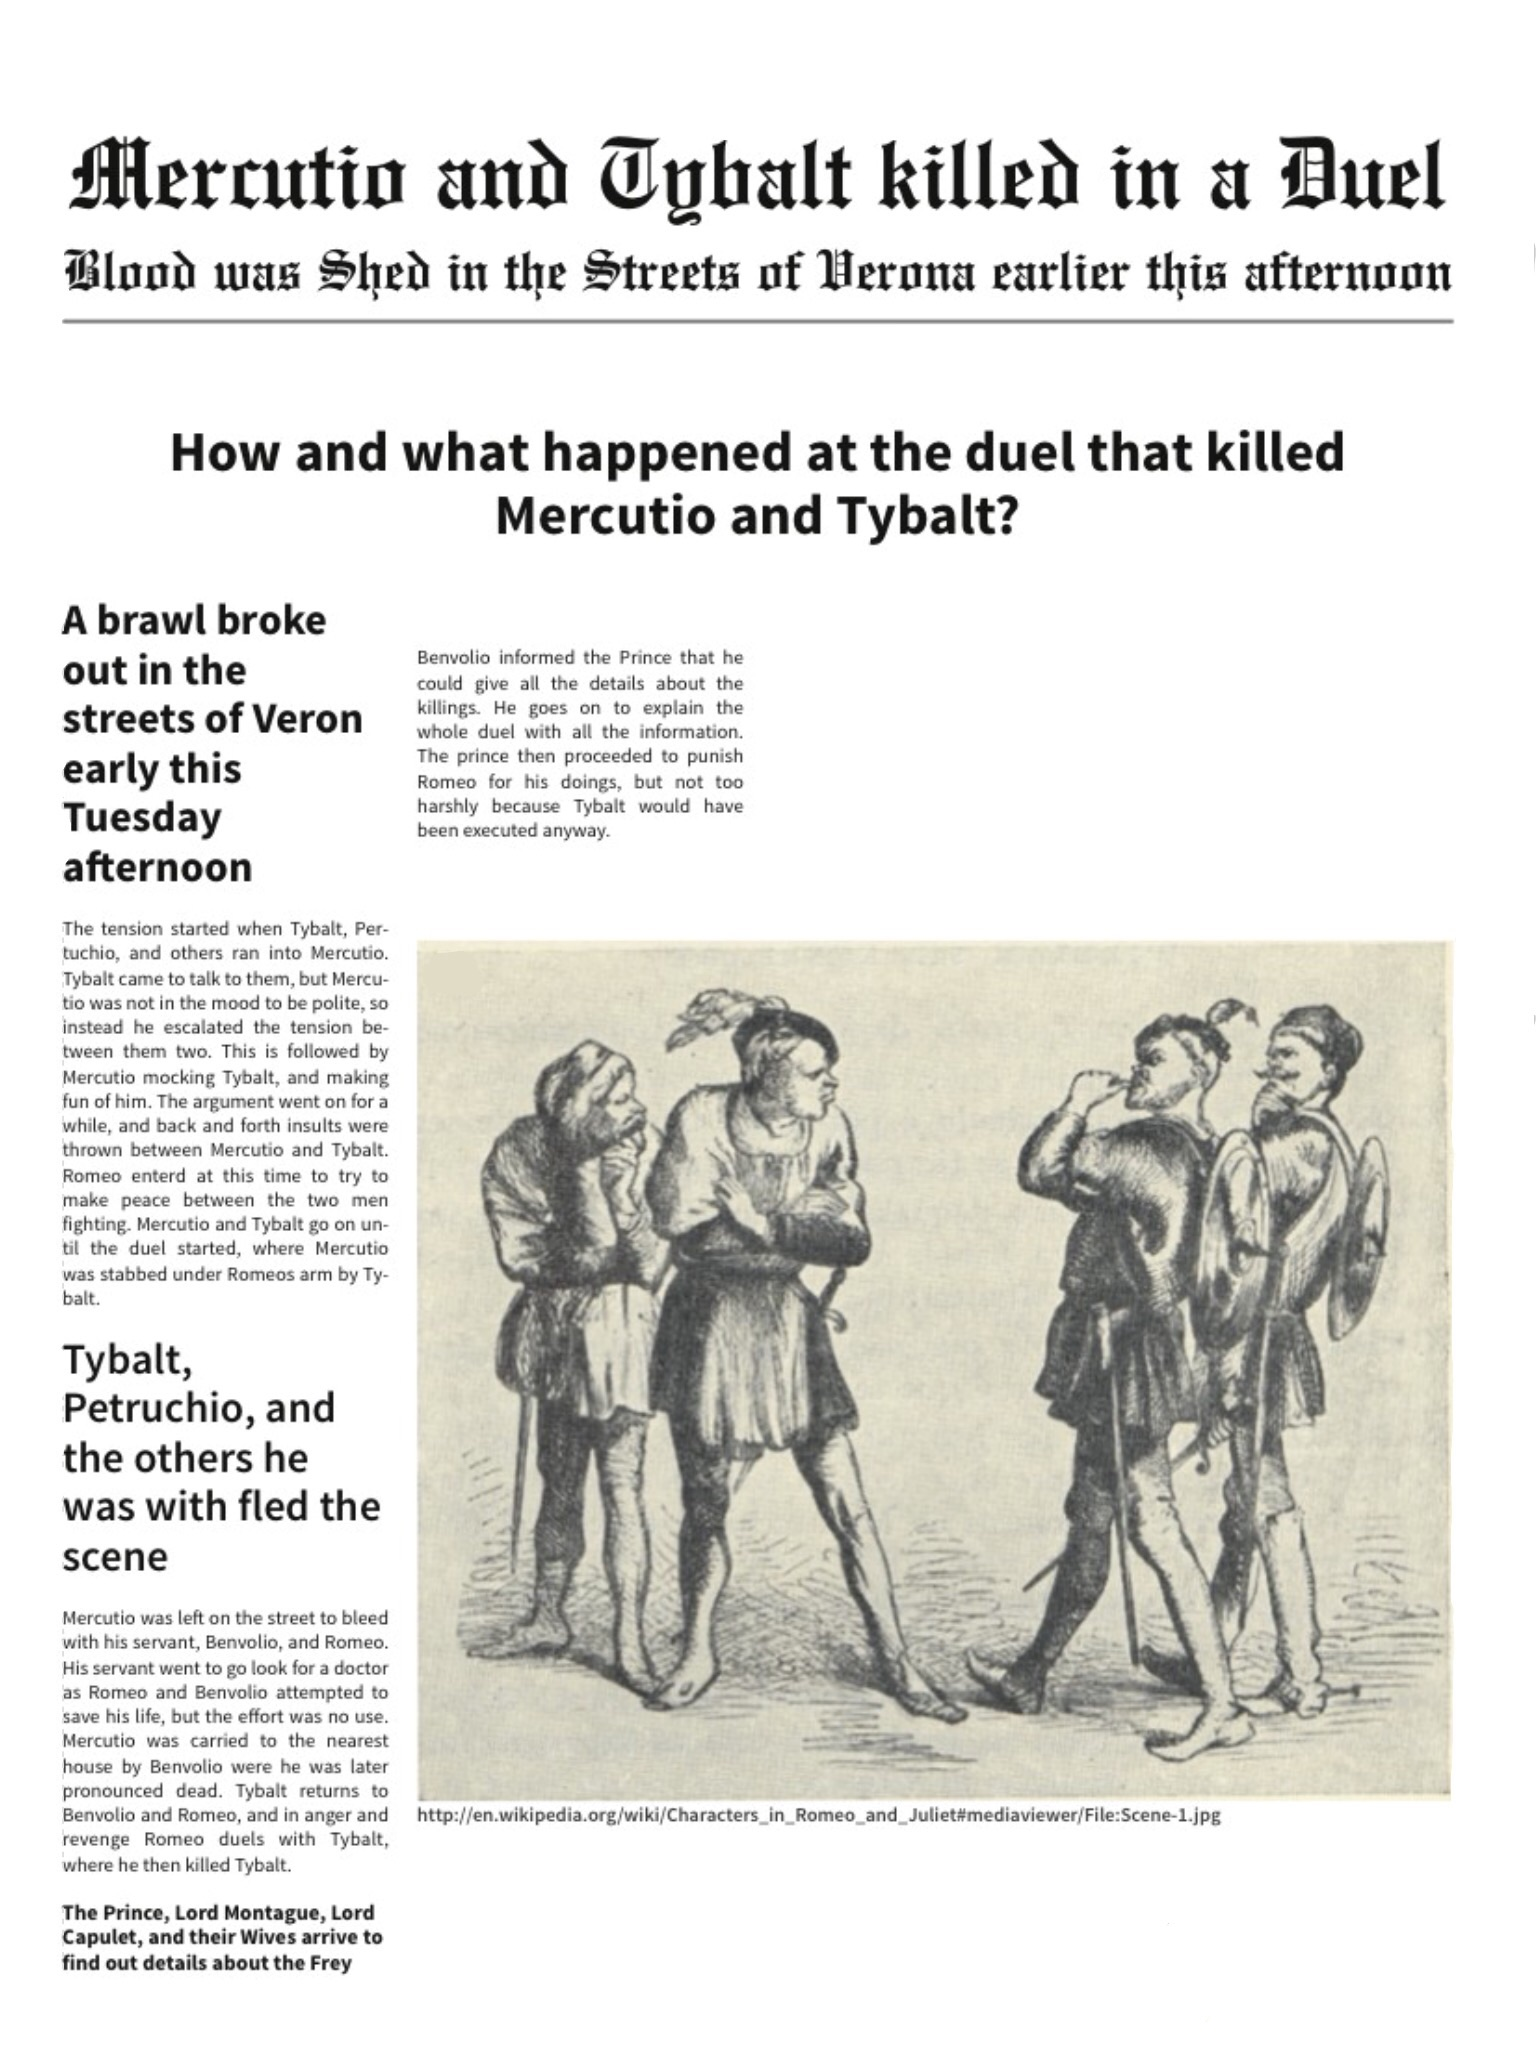 romeo and juliet newspaper essay example Romeo and juliet - part 4 - mercutio essay example romeo and juliet- essay romeo and juliet is a shakespearean classic that is widely considered to be timeless and universal - a quality that is attained through the strong values, themes, language.